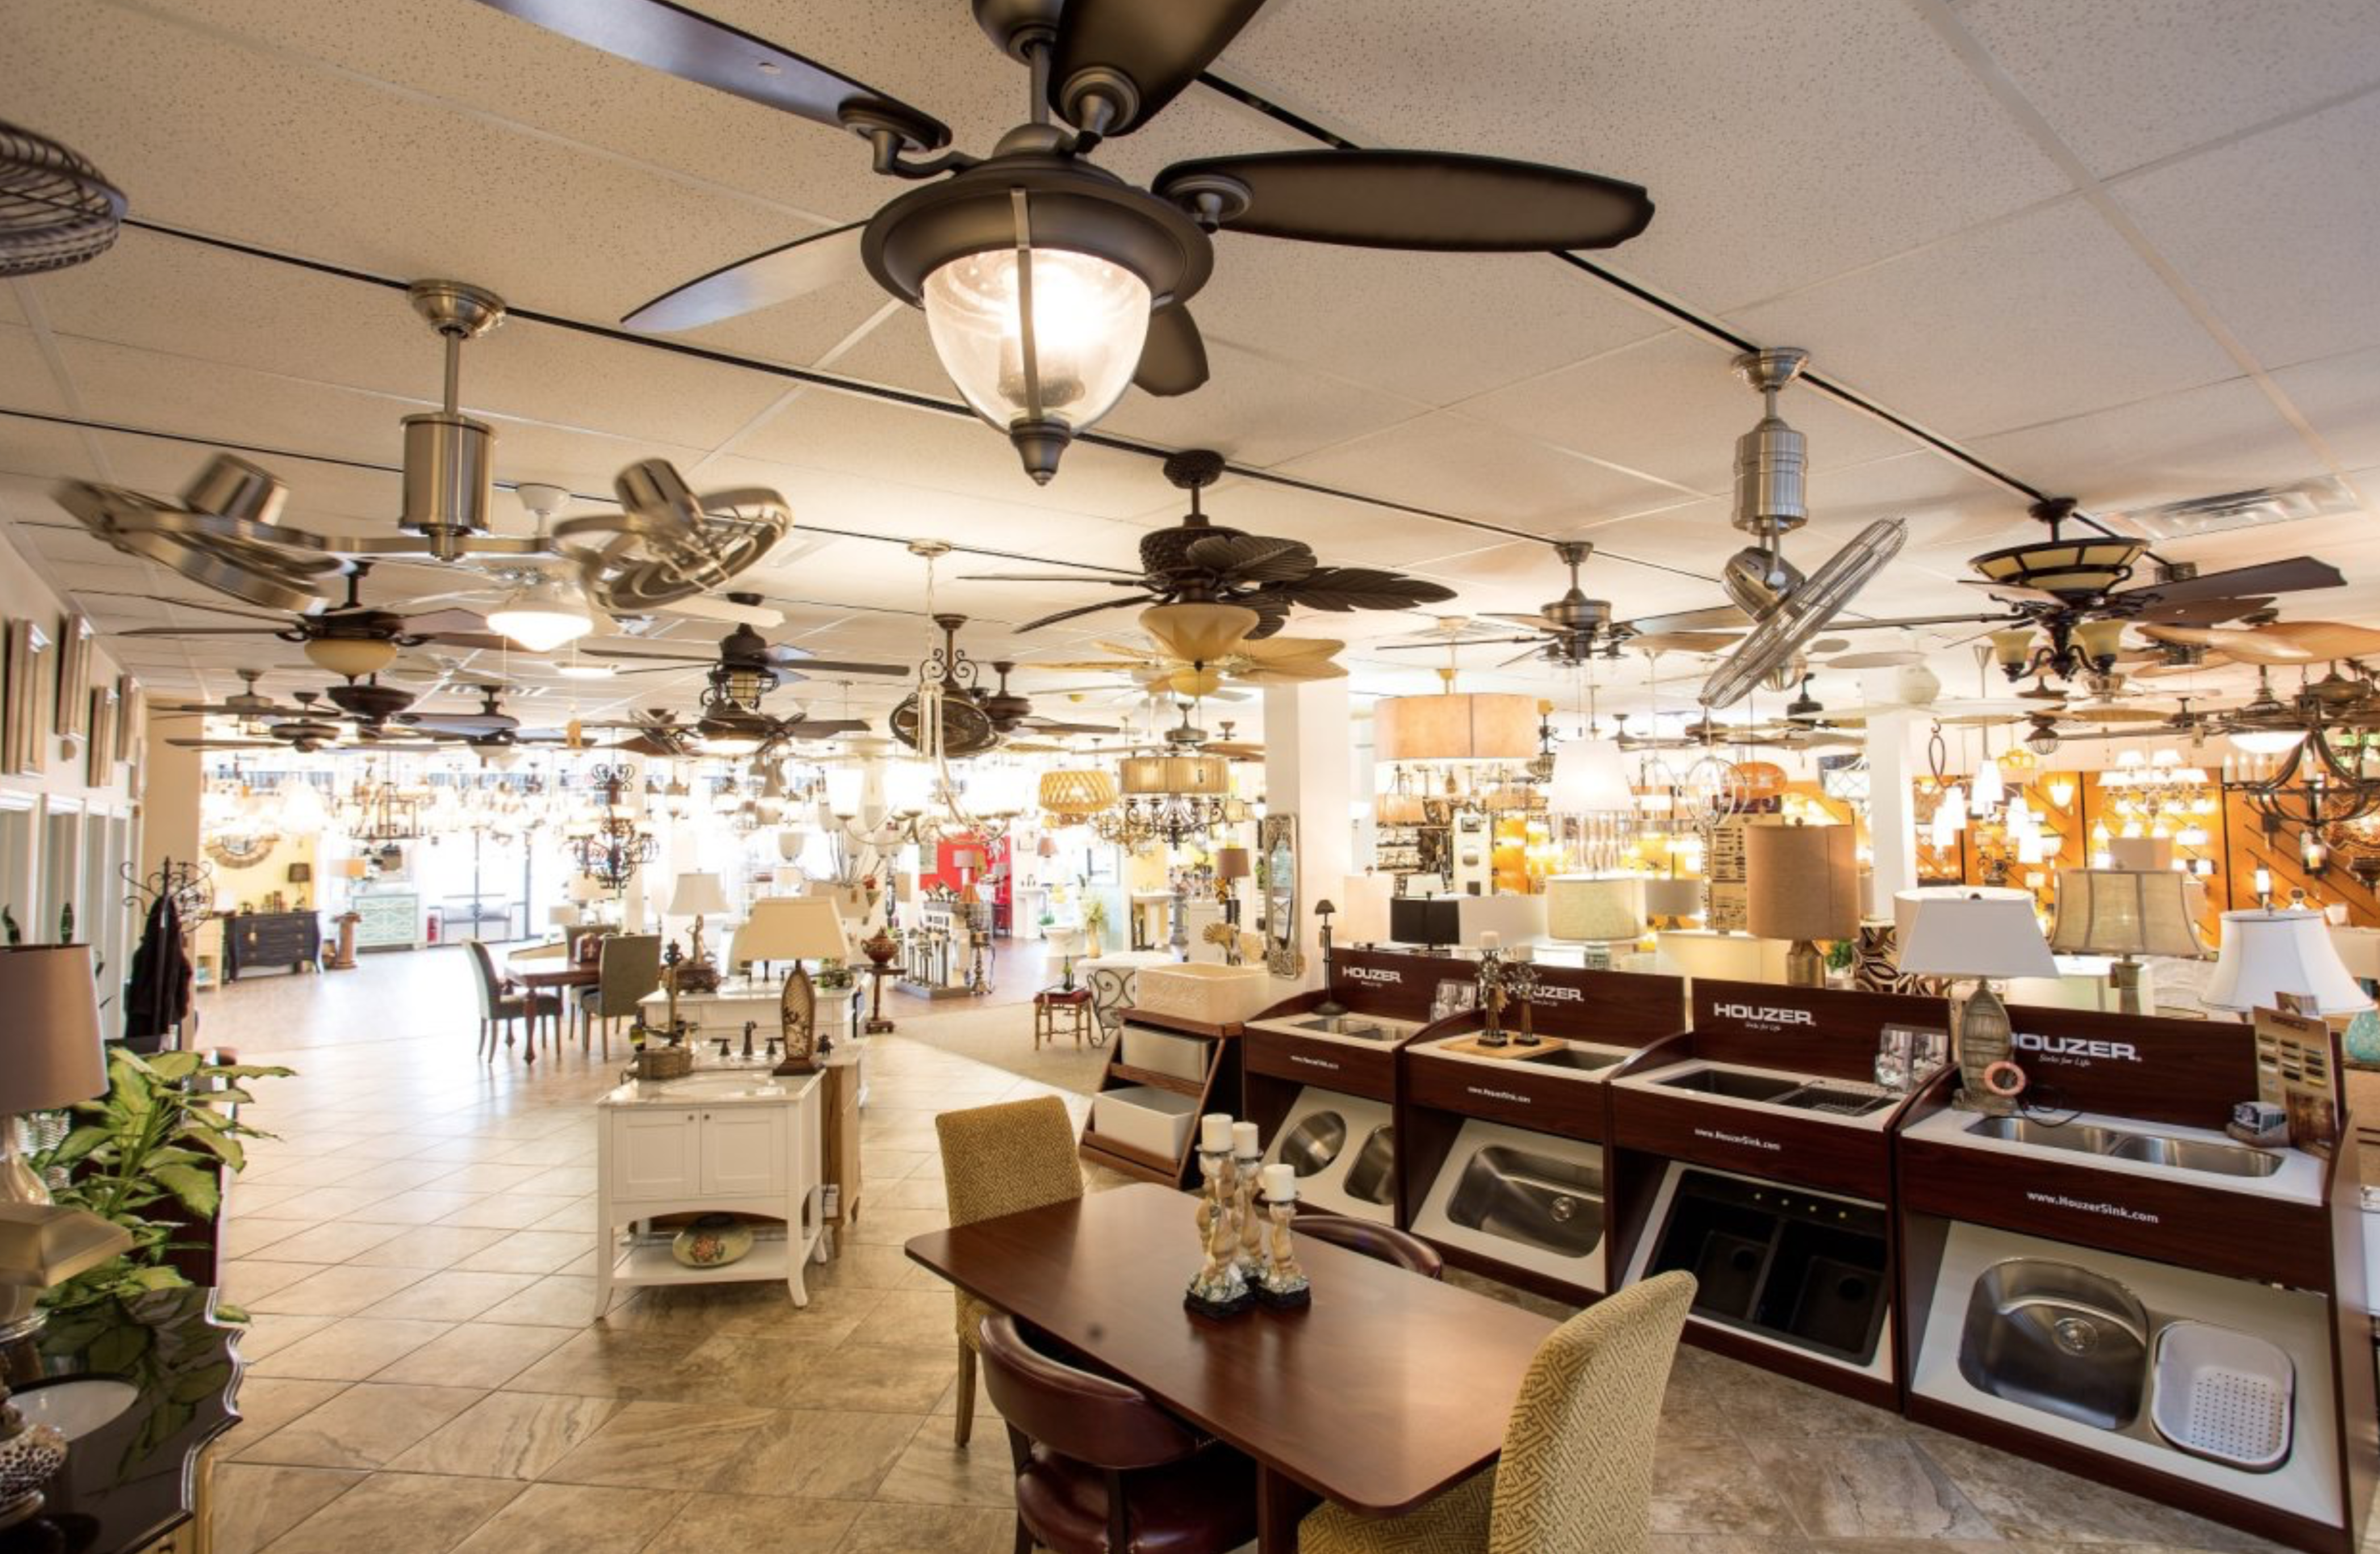 We have two lighting showrooms representing the Carolinas